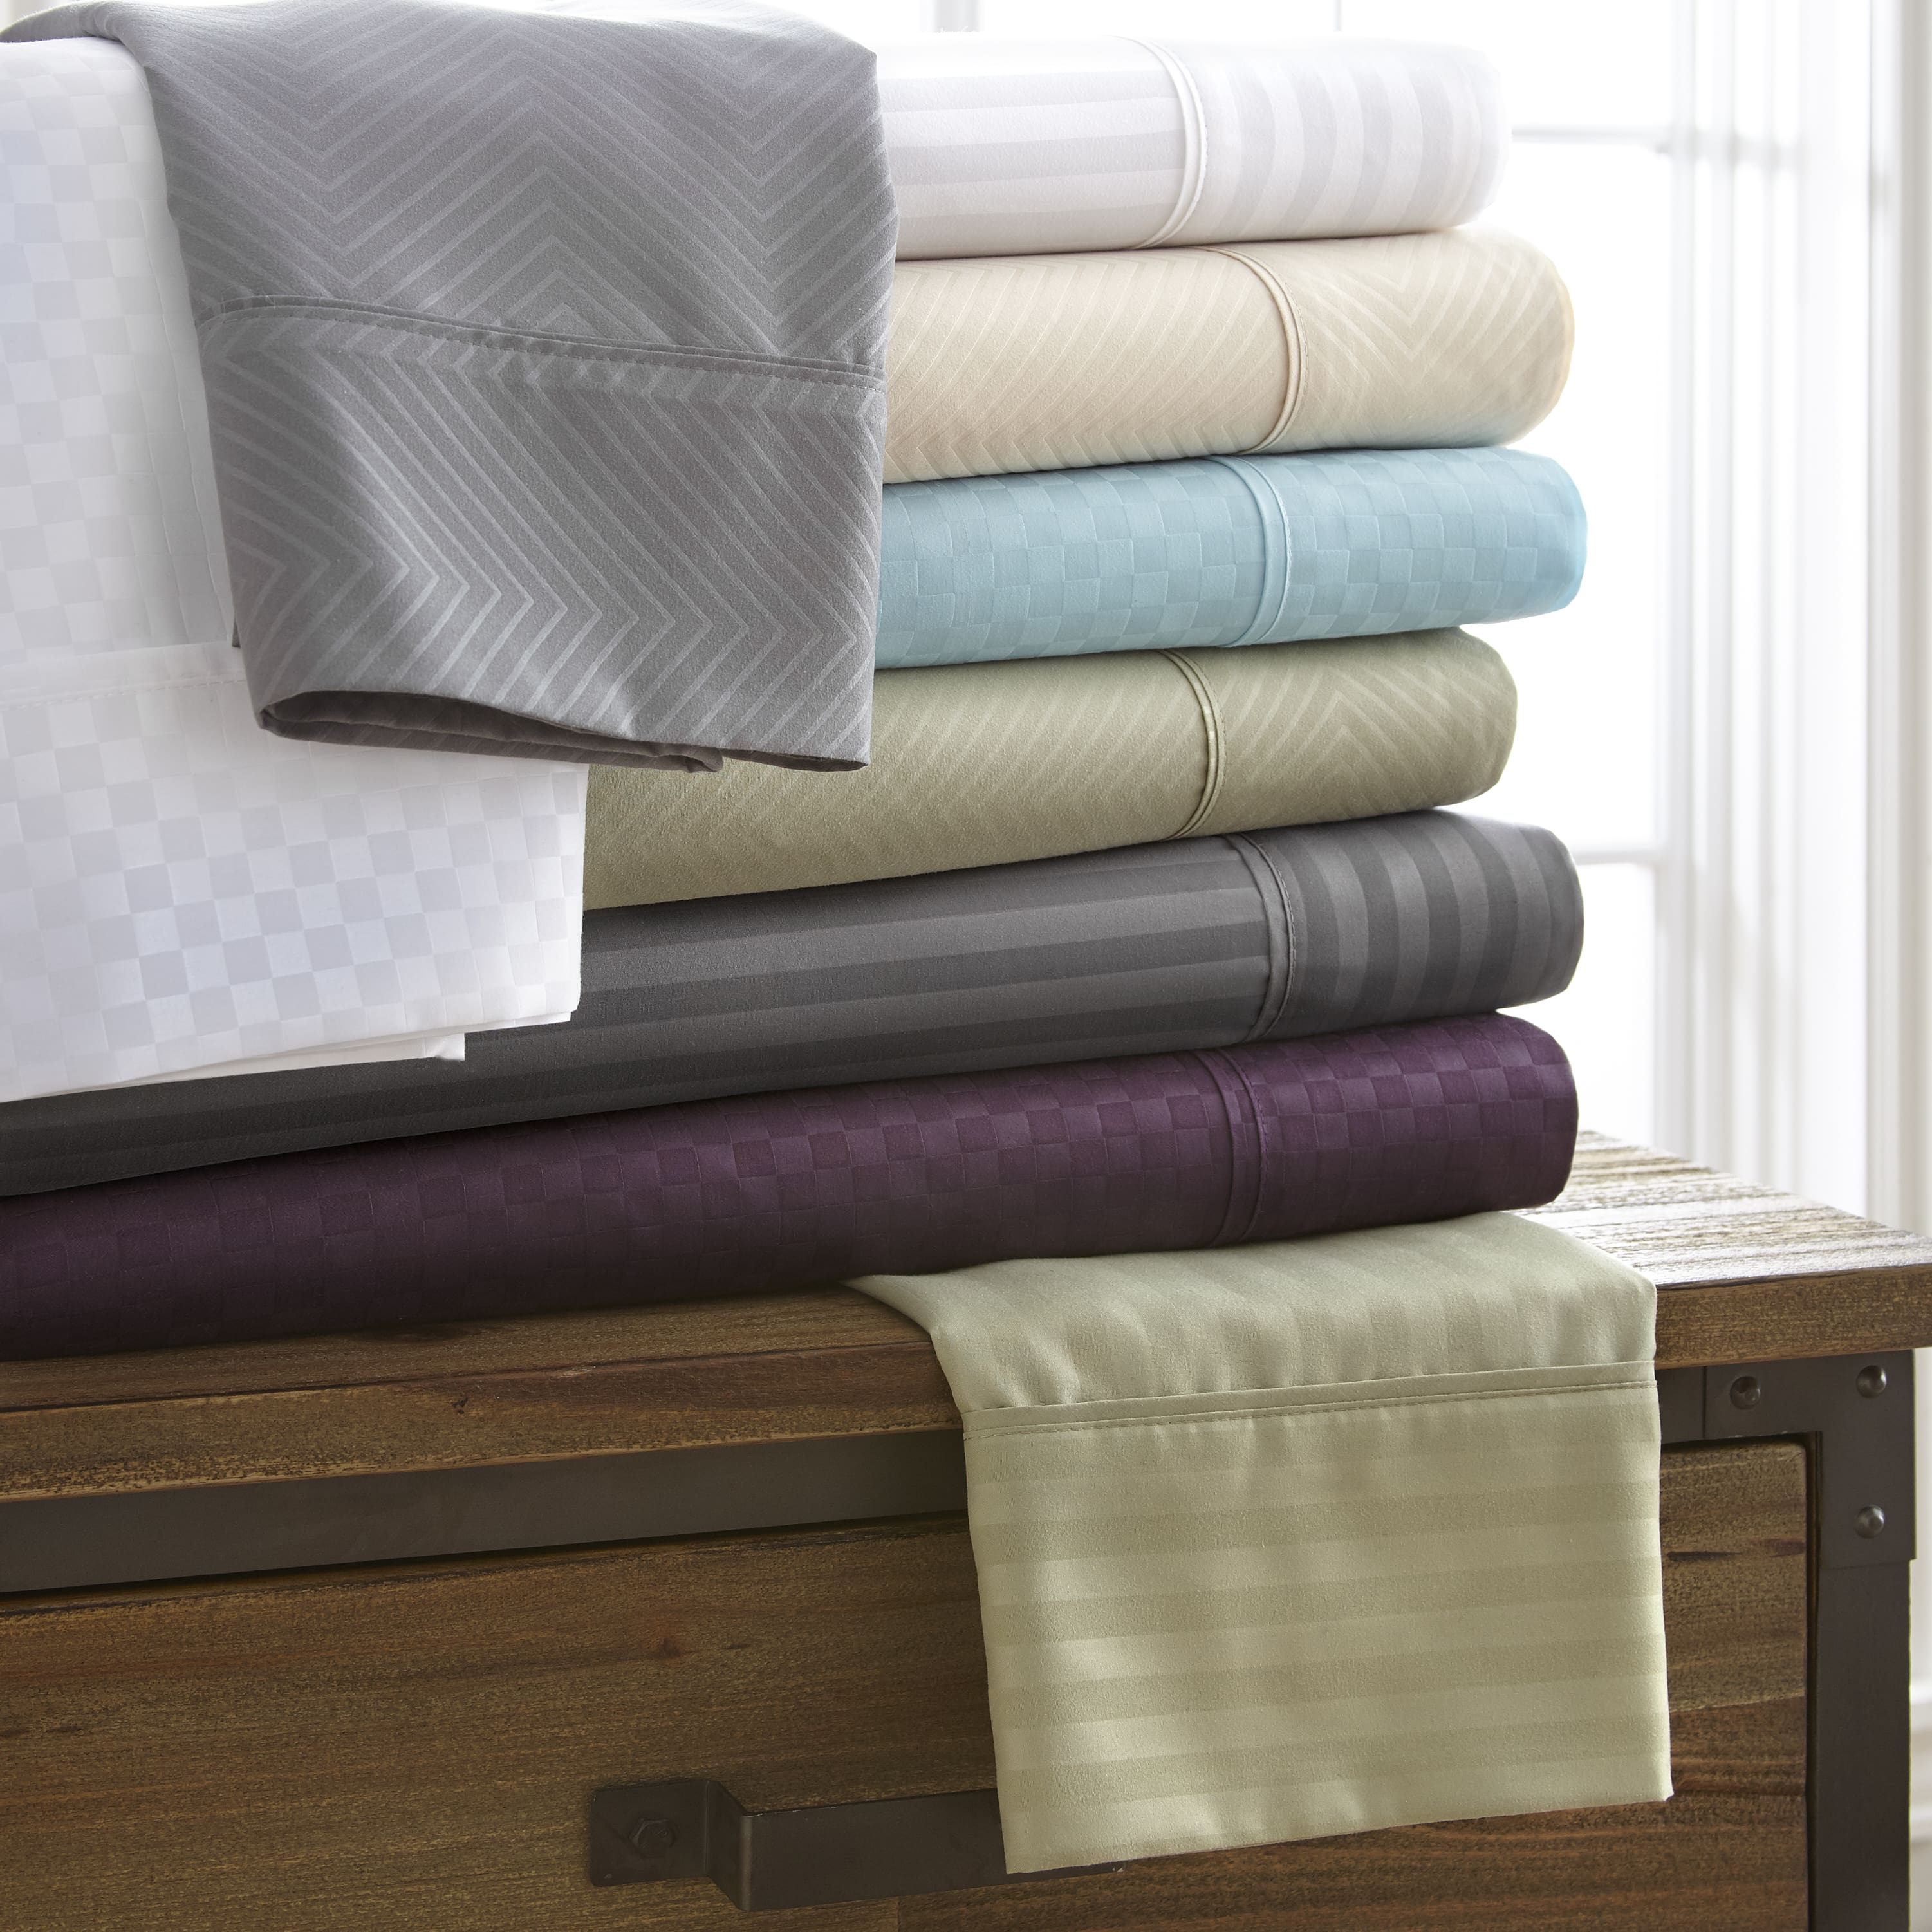 Linens and Hutch Embossed 4 Piece Sheet Sets: Starting at $20.79 + FS